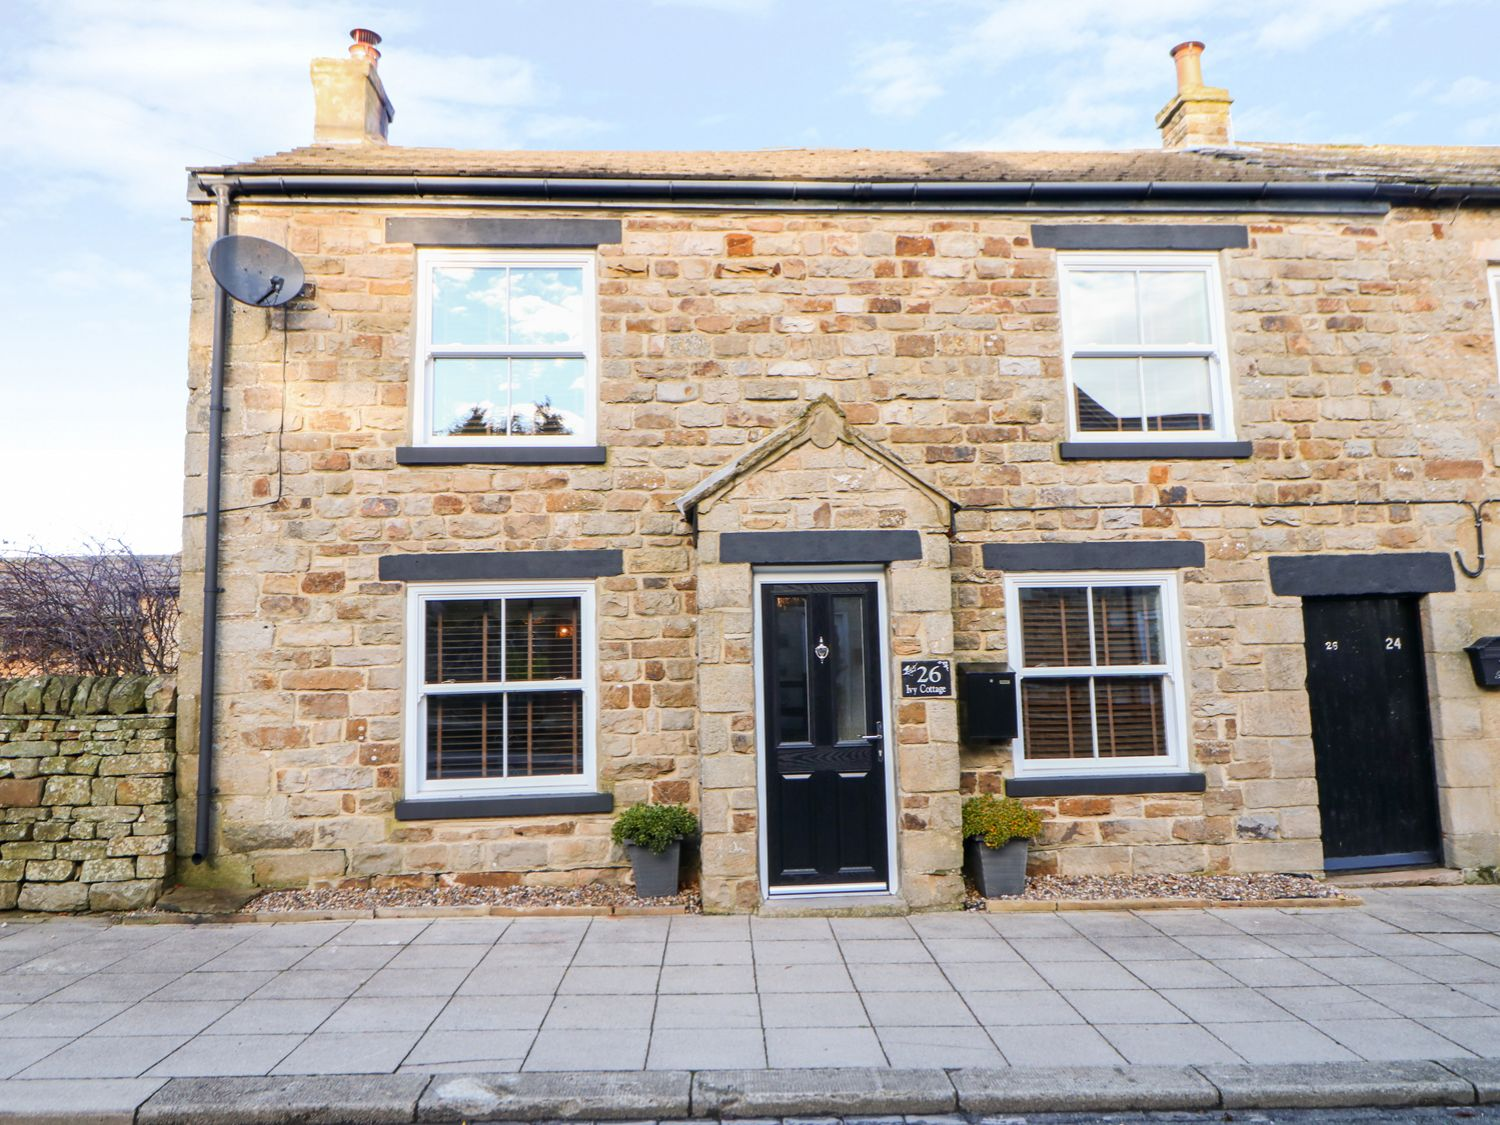 26 Front Street - Yorkshire Dales - 974188 - photo 1